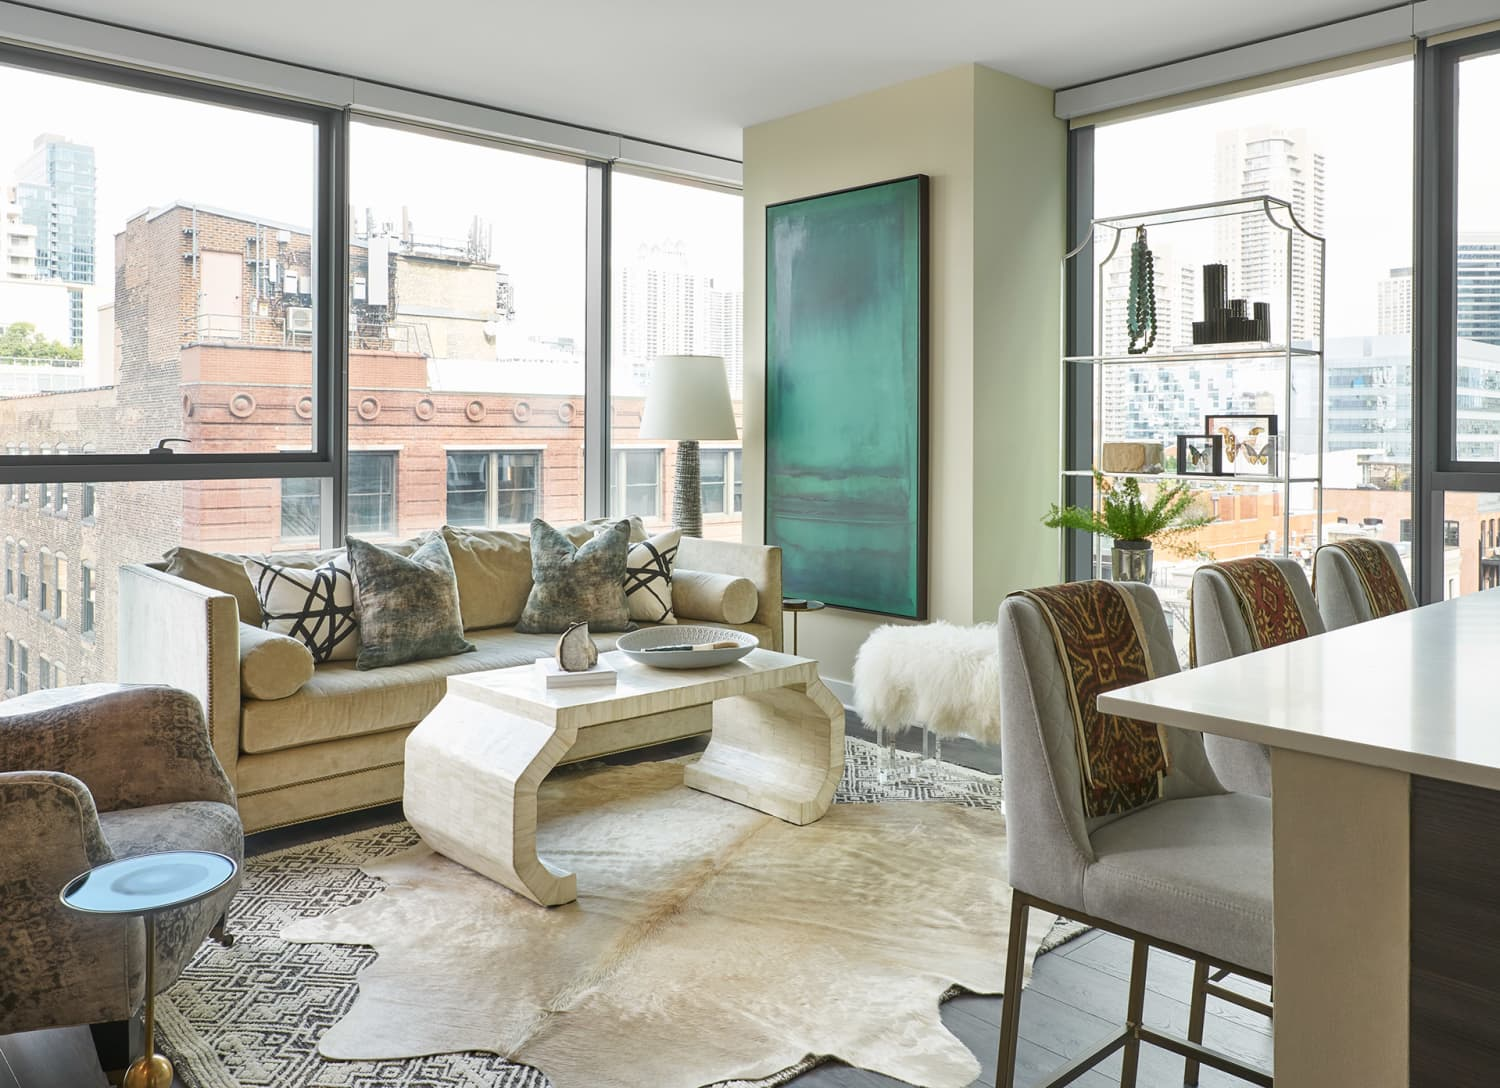 Chic Chicago High-Rise Apartment Mini Tour | Apartment Therapy